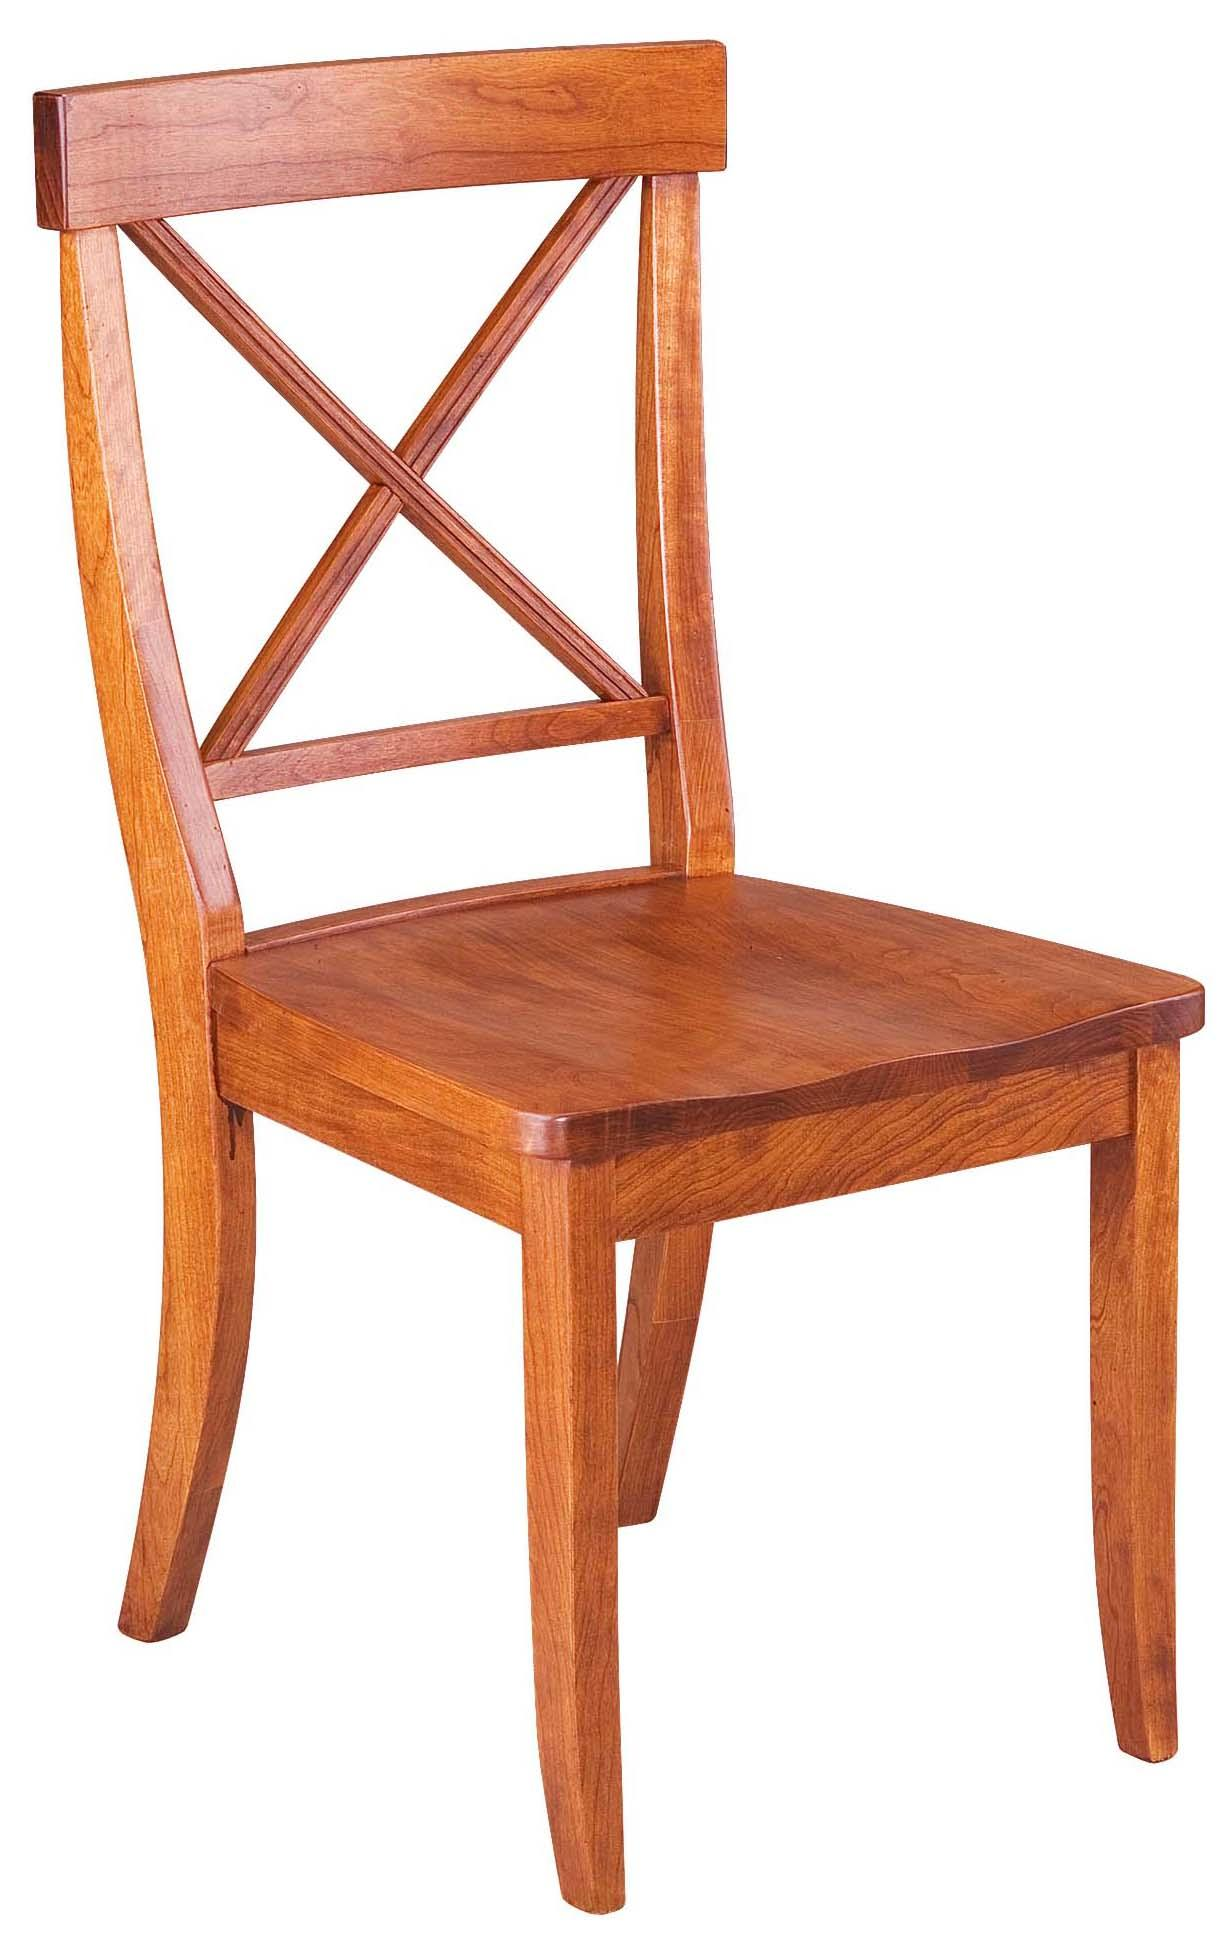 Greenbrier Dining LaCroix Side Chair - Item Number: 71188